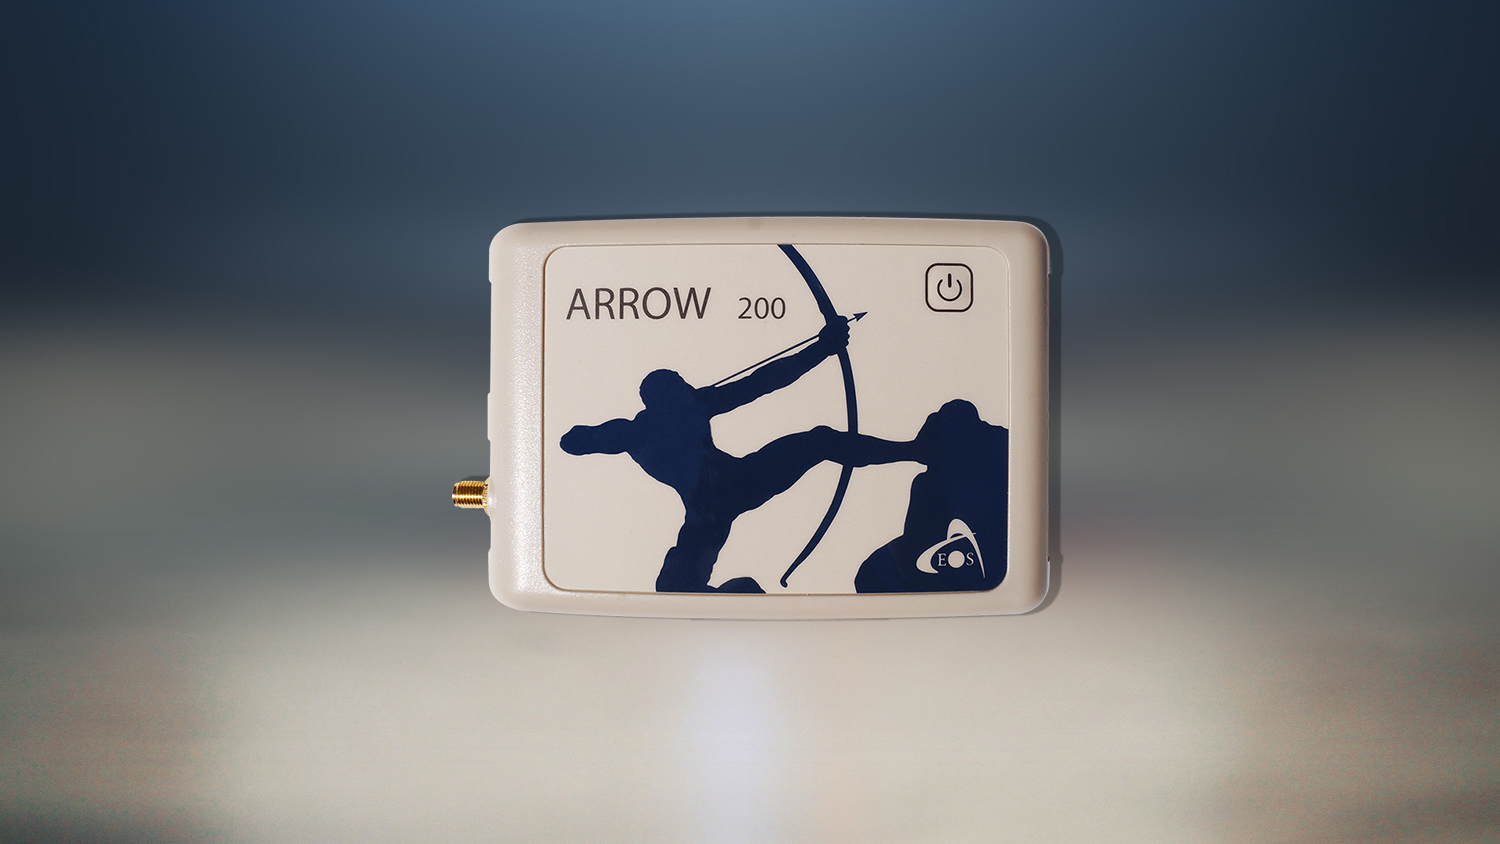 Press Release- Eos Launches the Arrow 200 Receiver with RTK